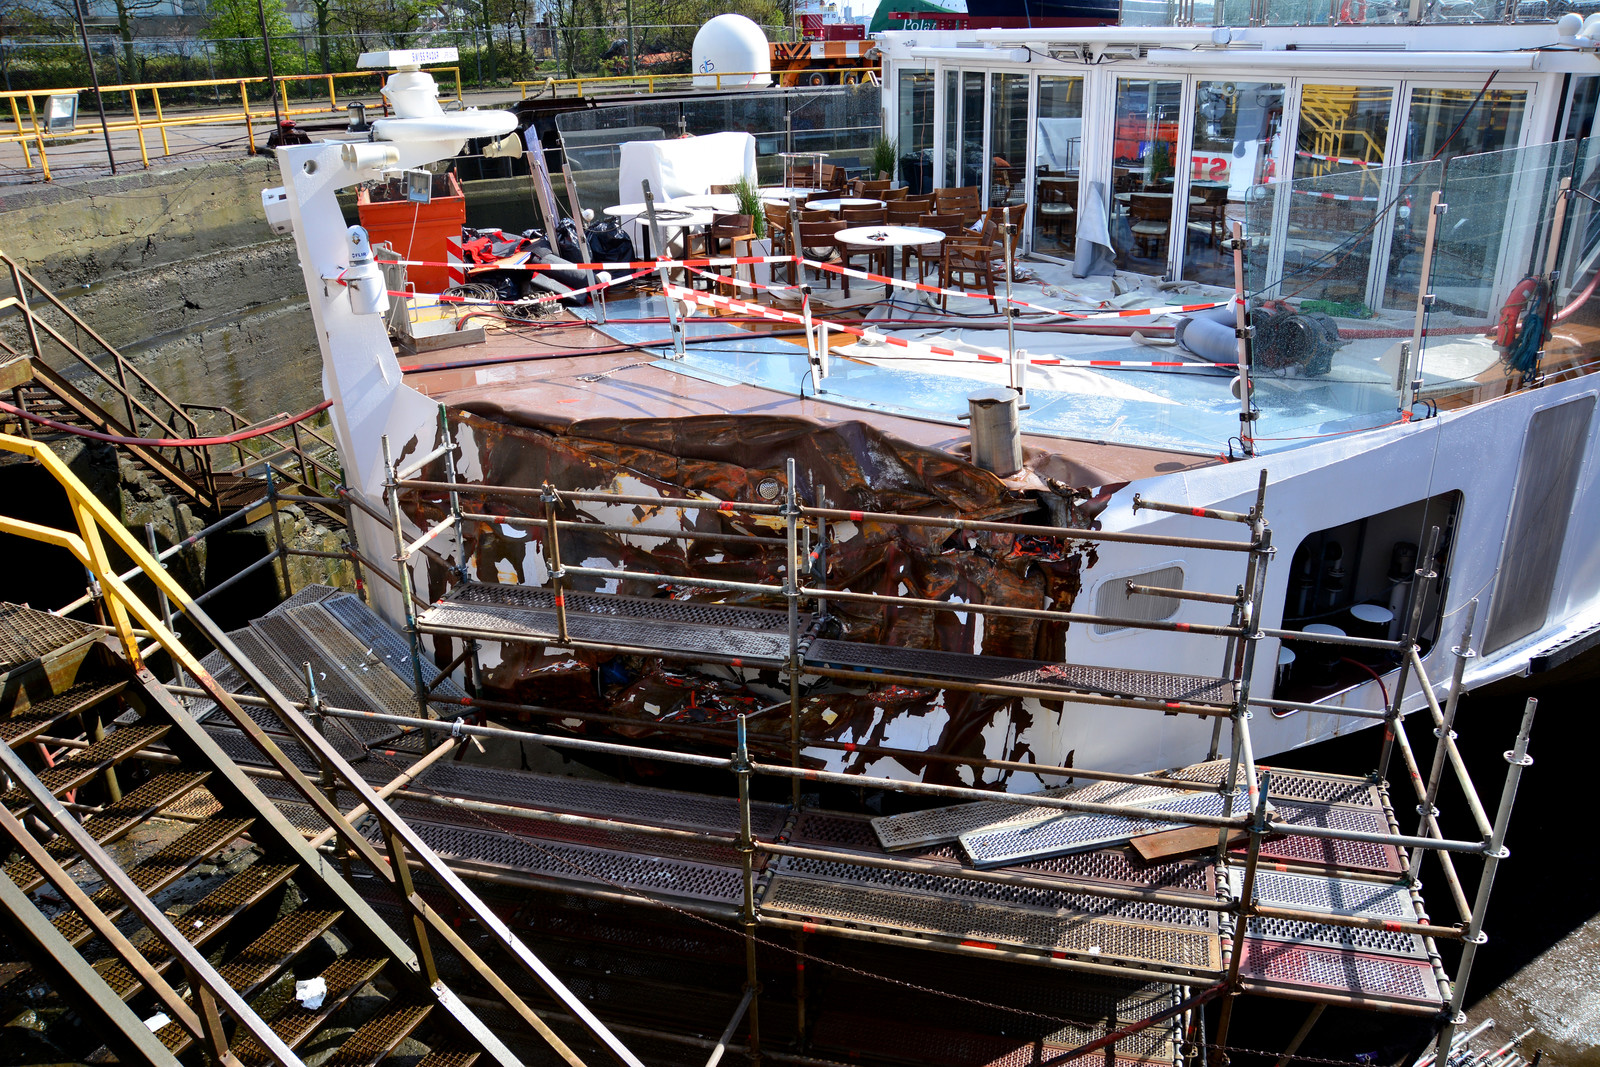 Dutch Safety Board: River cruise safety inadequate